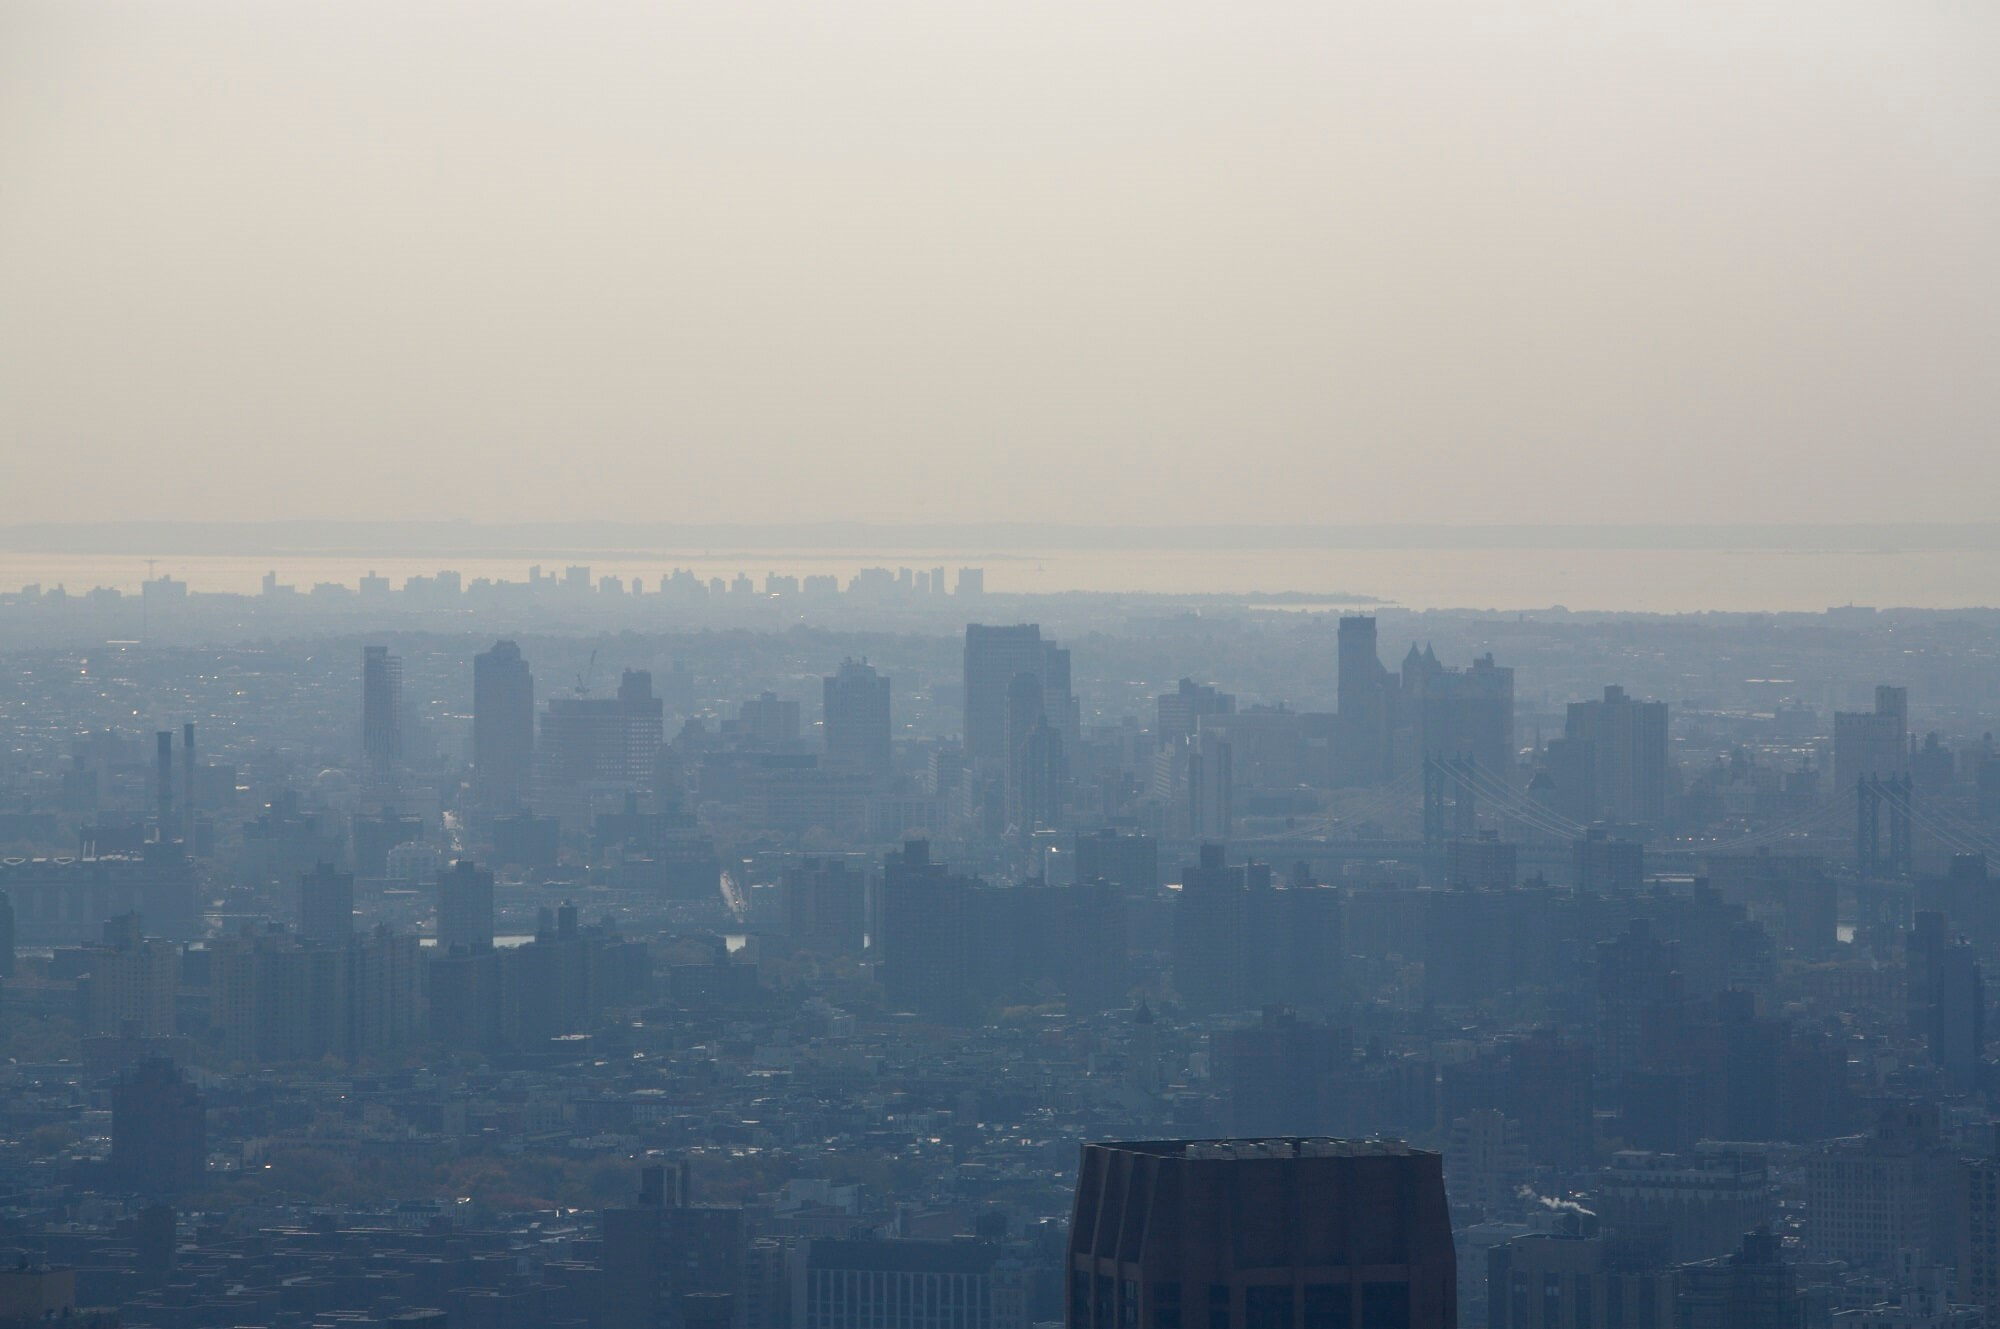 Culture Negative Pneumonia Rates Linked to Higher PM2.5 Concentrations